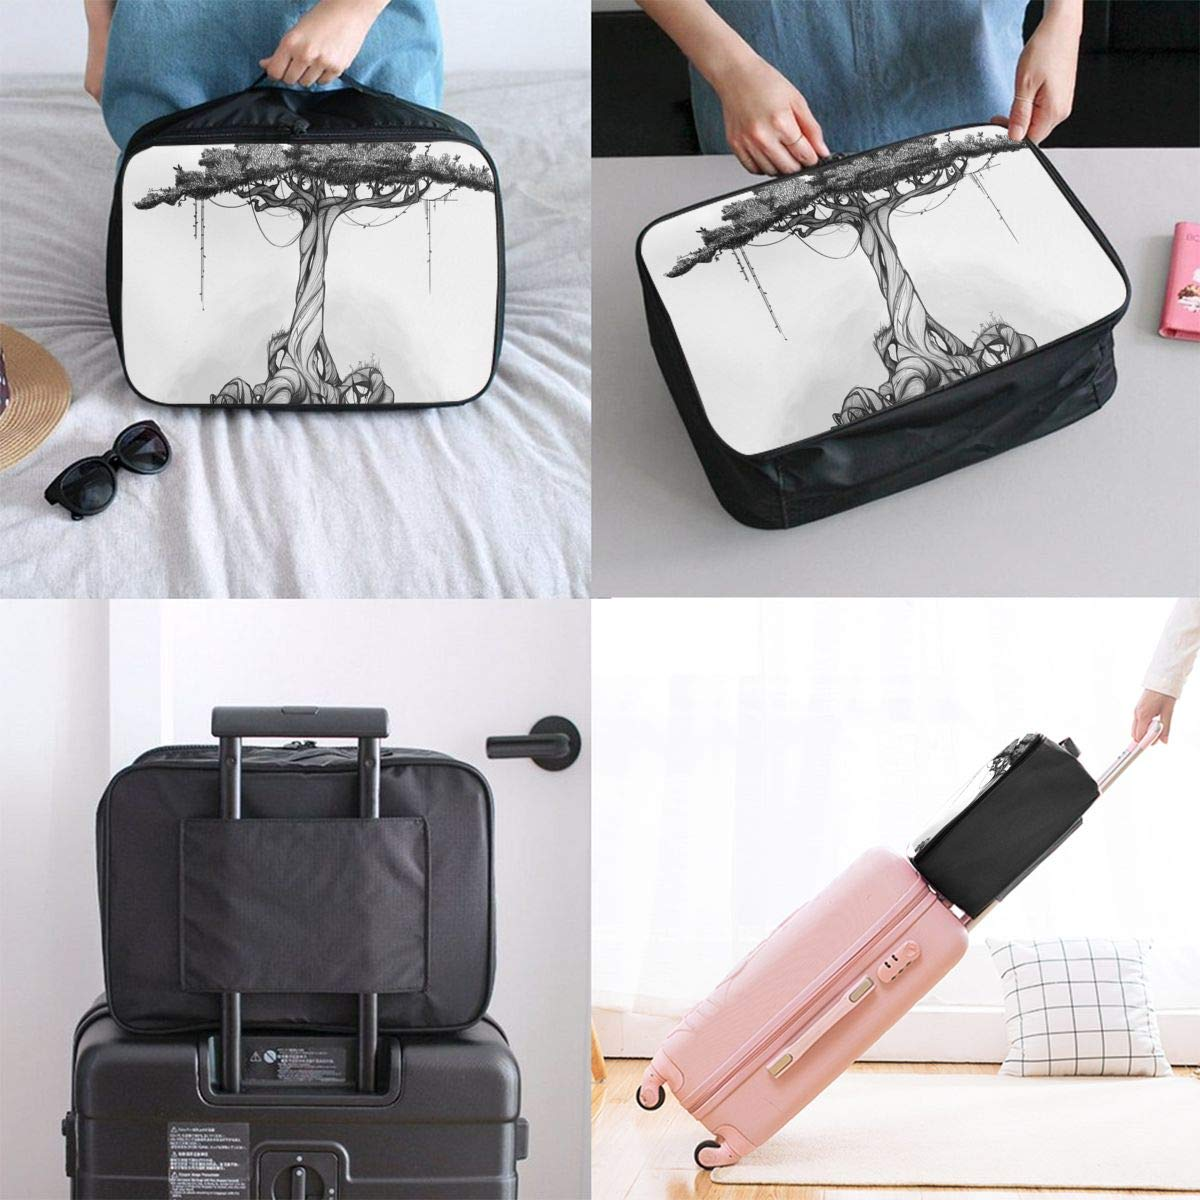 Travel Luggage Duffle Bag Lightweight Portable Handbag Black Tree With Roots Large Capacity Waterproof Foldable Storage Tote